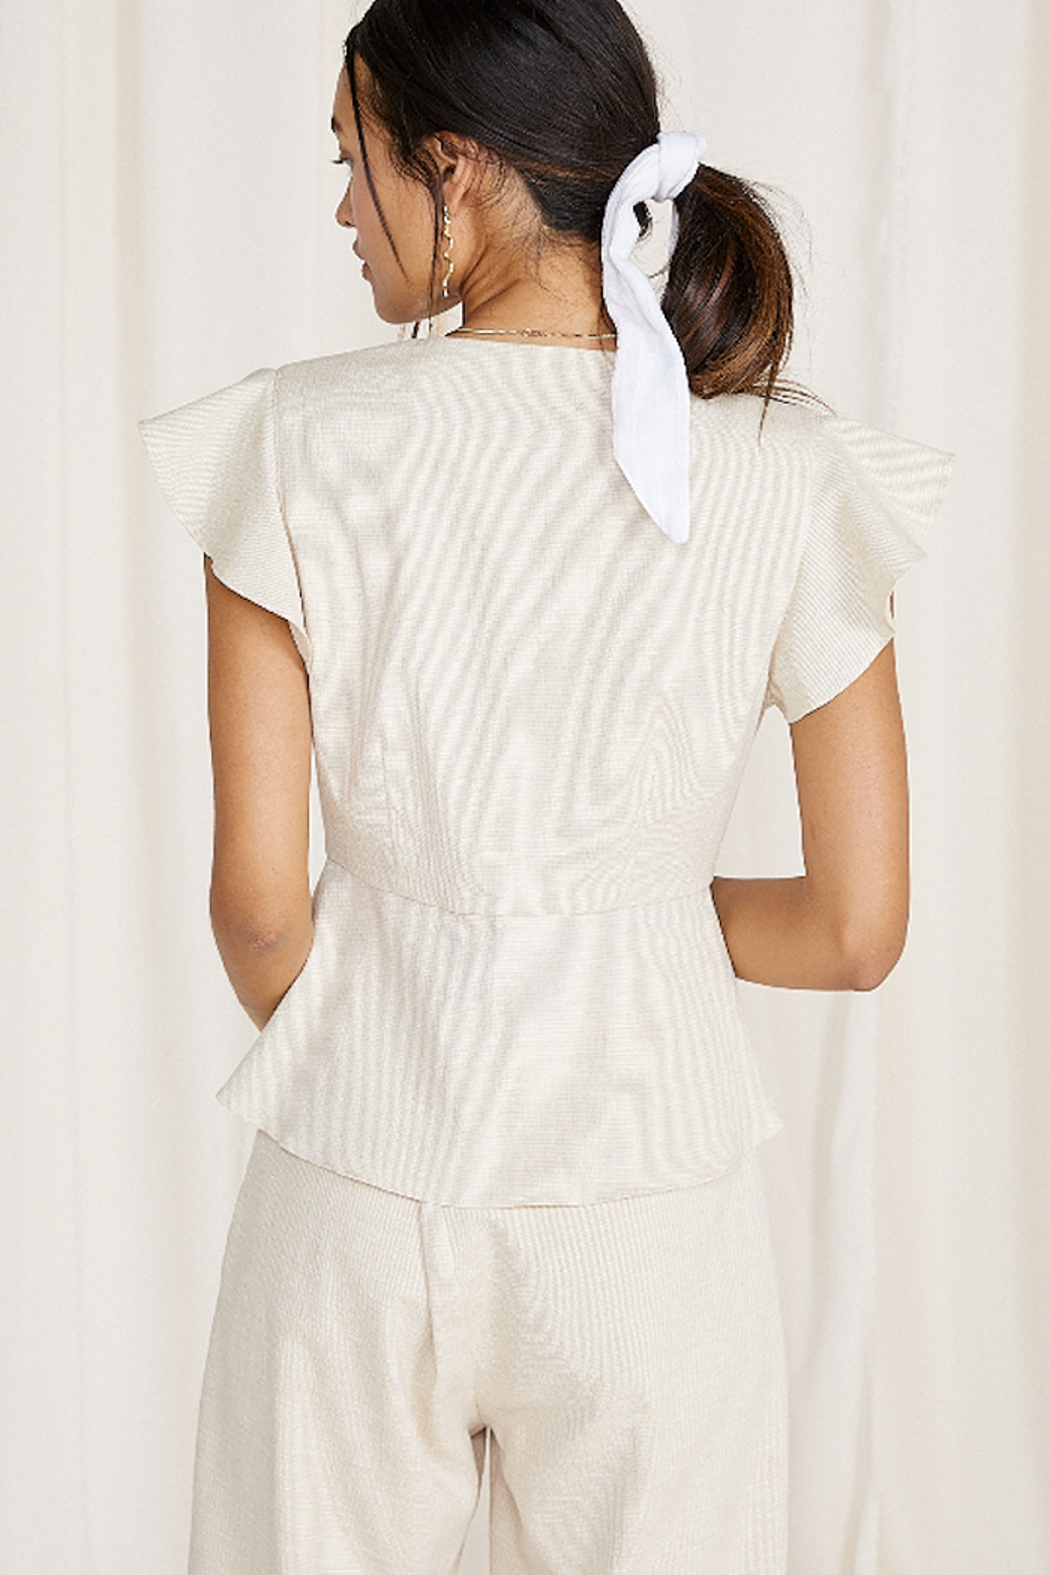 SAGE THE LABEL Norah Tie Front Top - Front Full Image